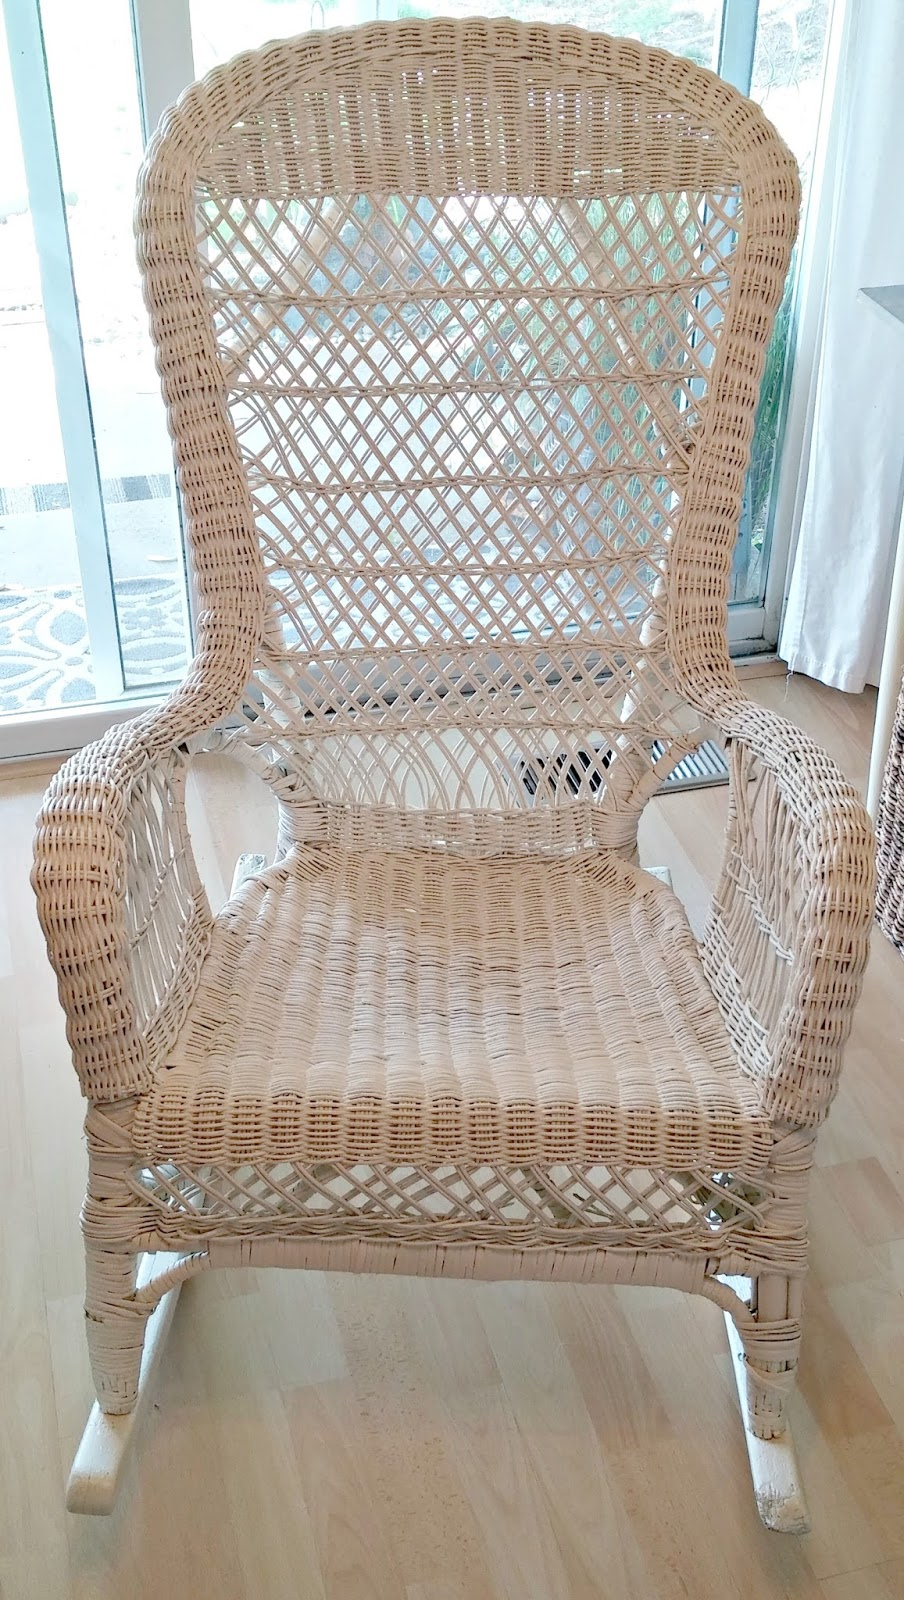 vintage wicker rocking chair crate and barrel slipcover makeover little cottage i gave the whole thing a quick sanding cleaning then sprayed it with heirloom white